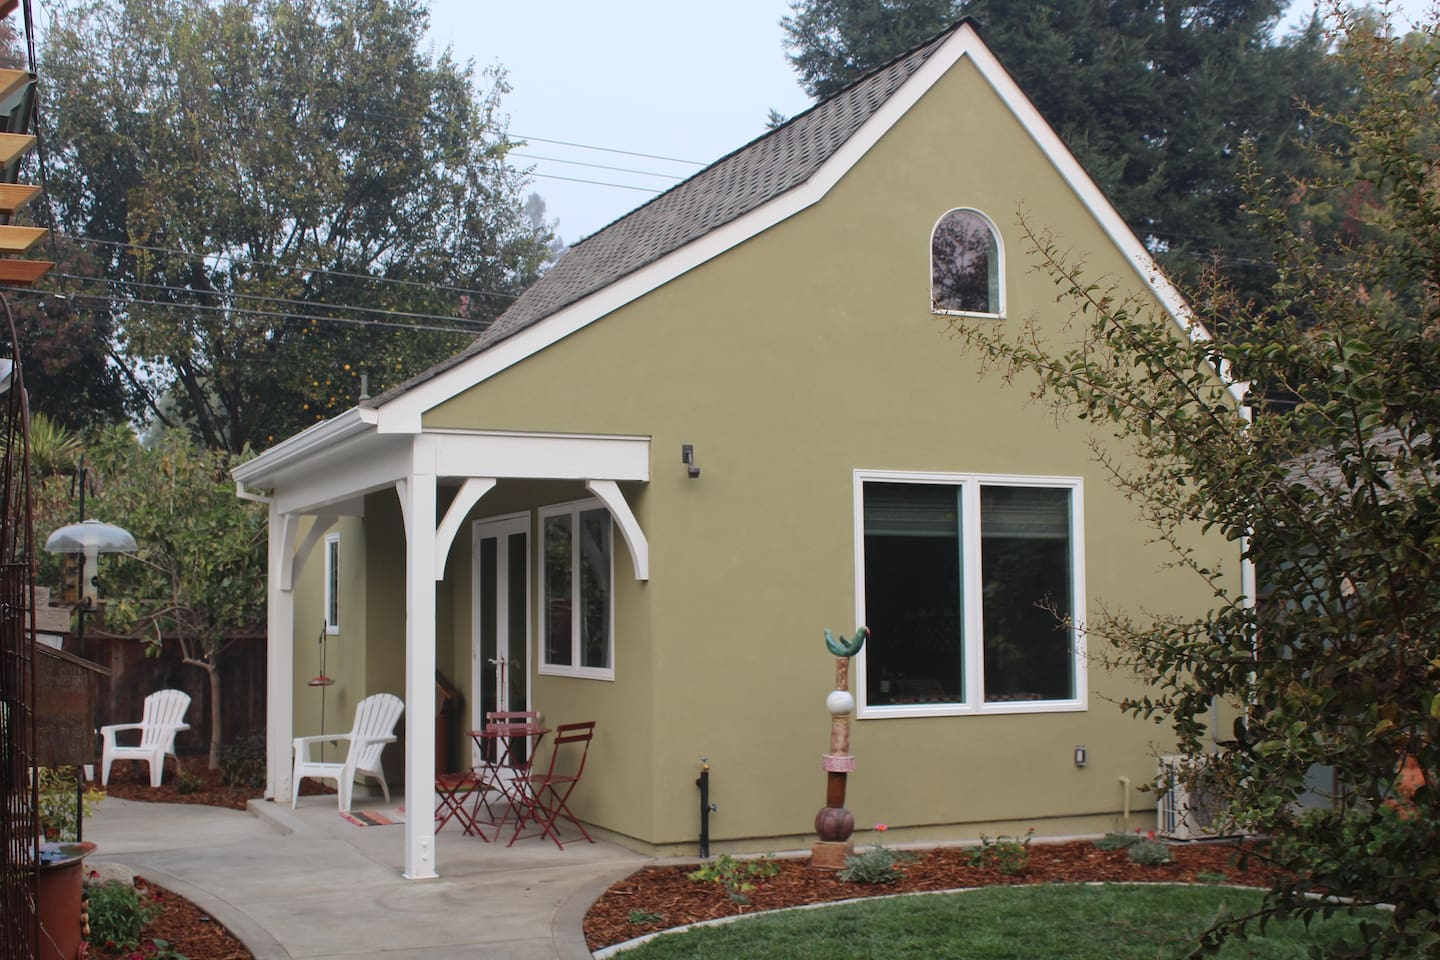 Welcome to the Fig Tree Cottage in the Heart of Land Park